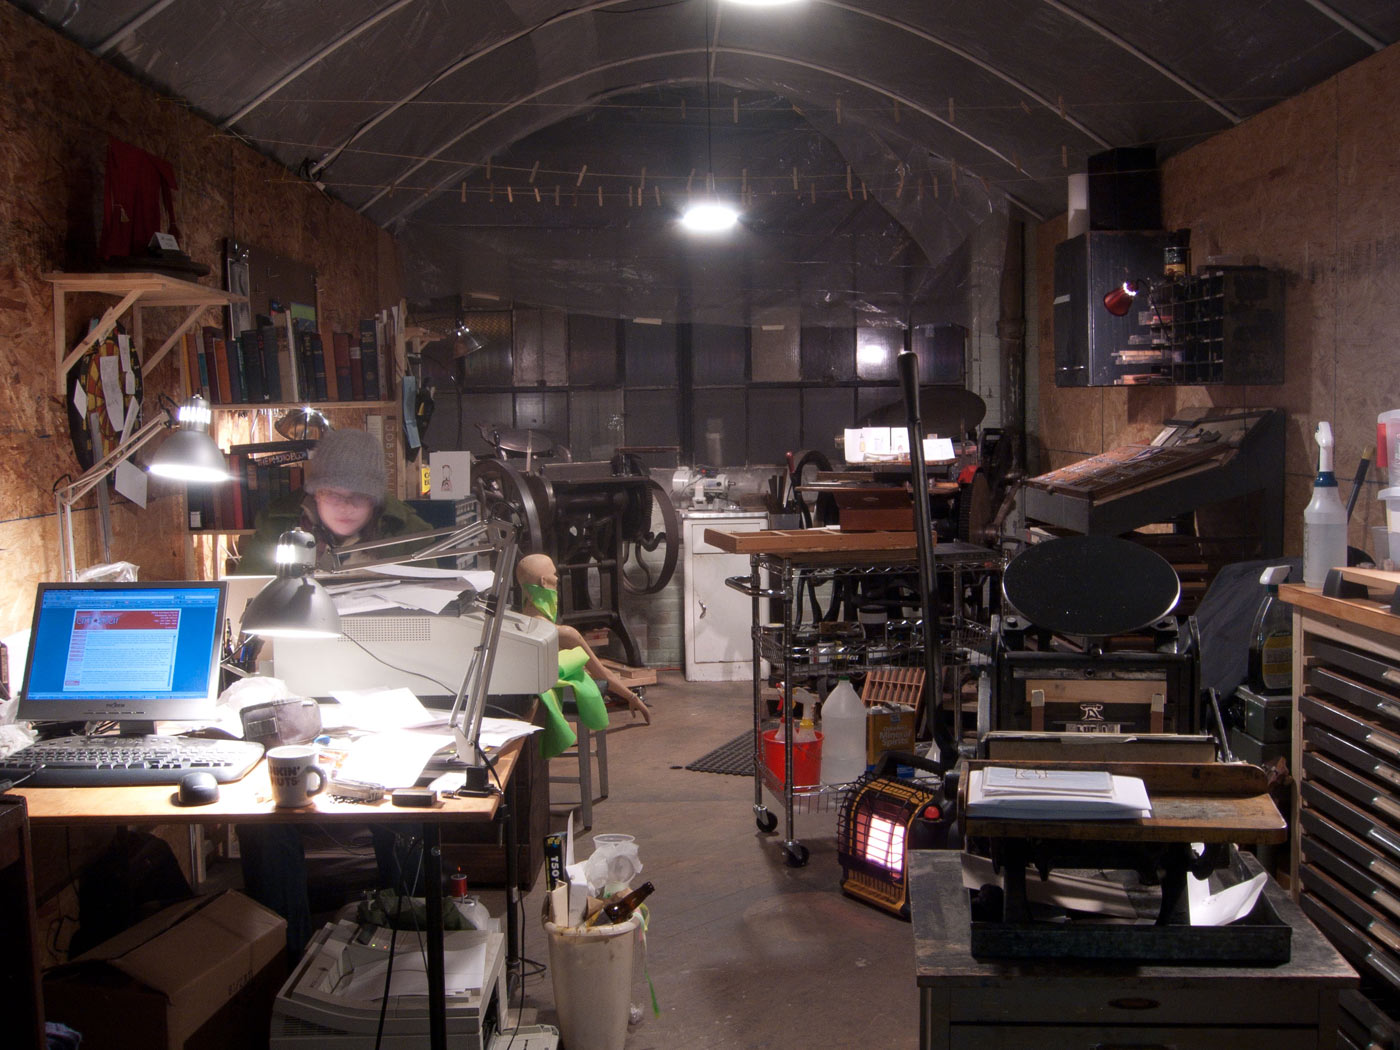 Our very first letterpress studio in Philly.